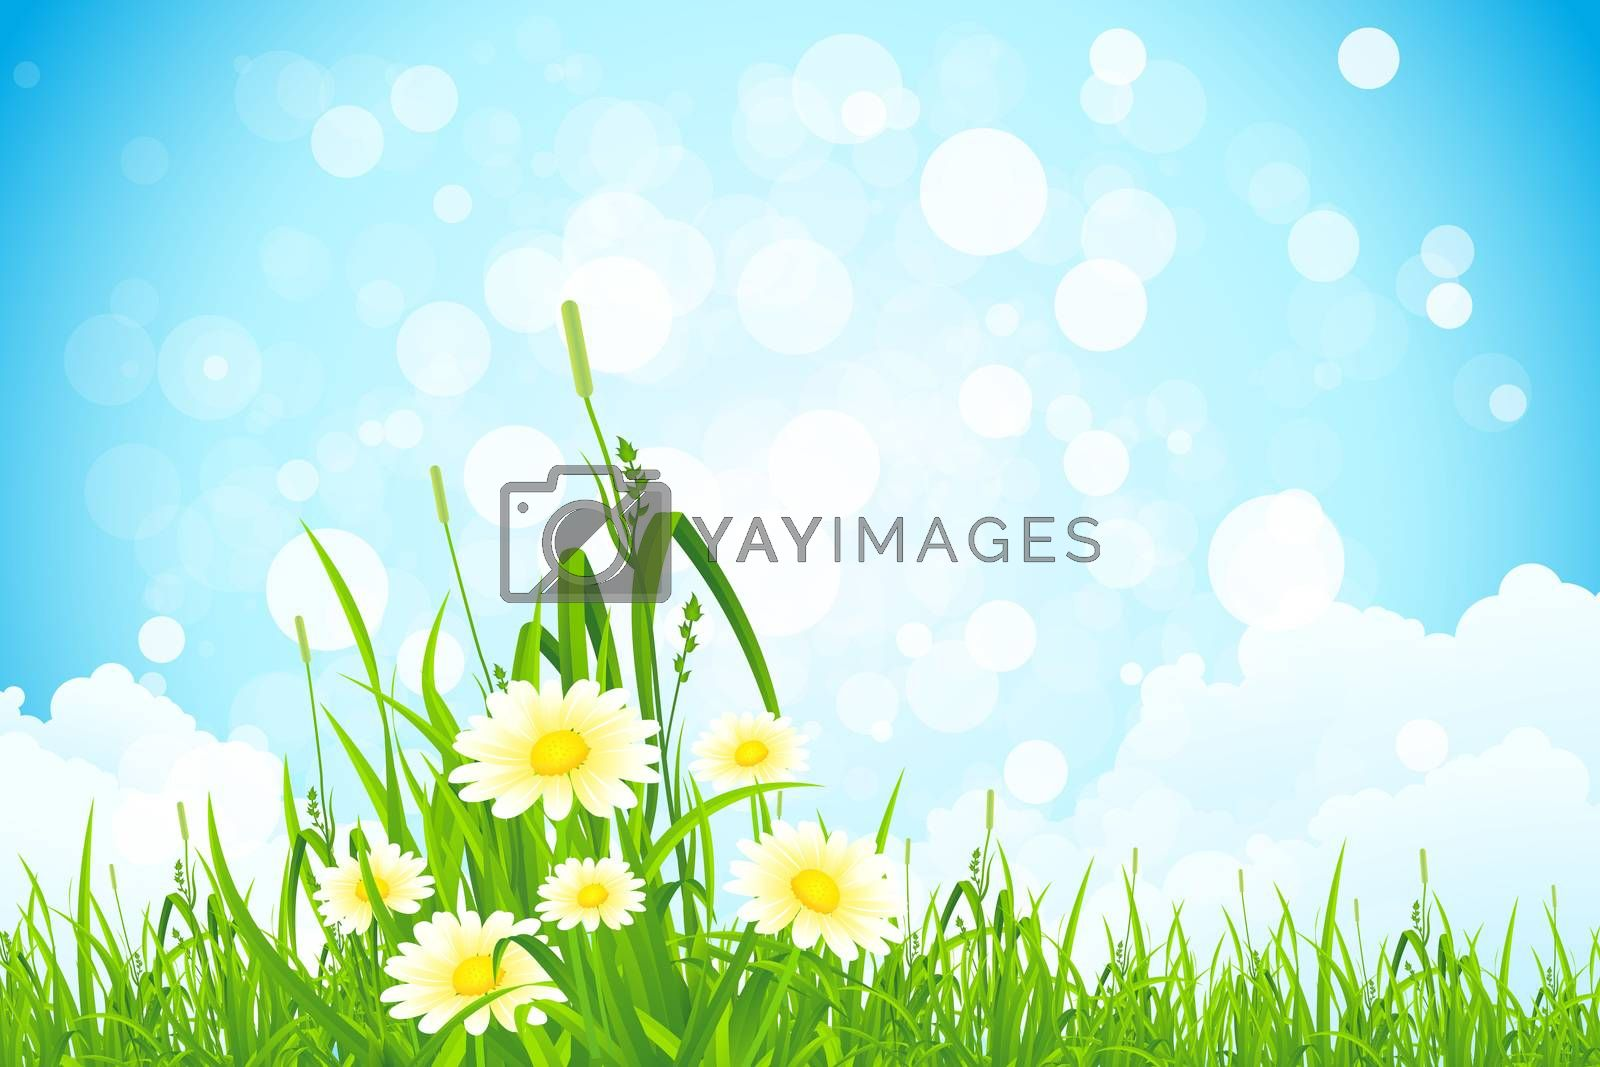 Flowers in the Grass by WaD